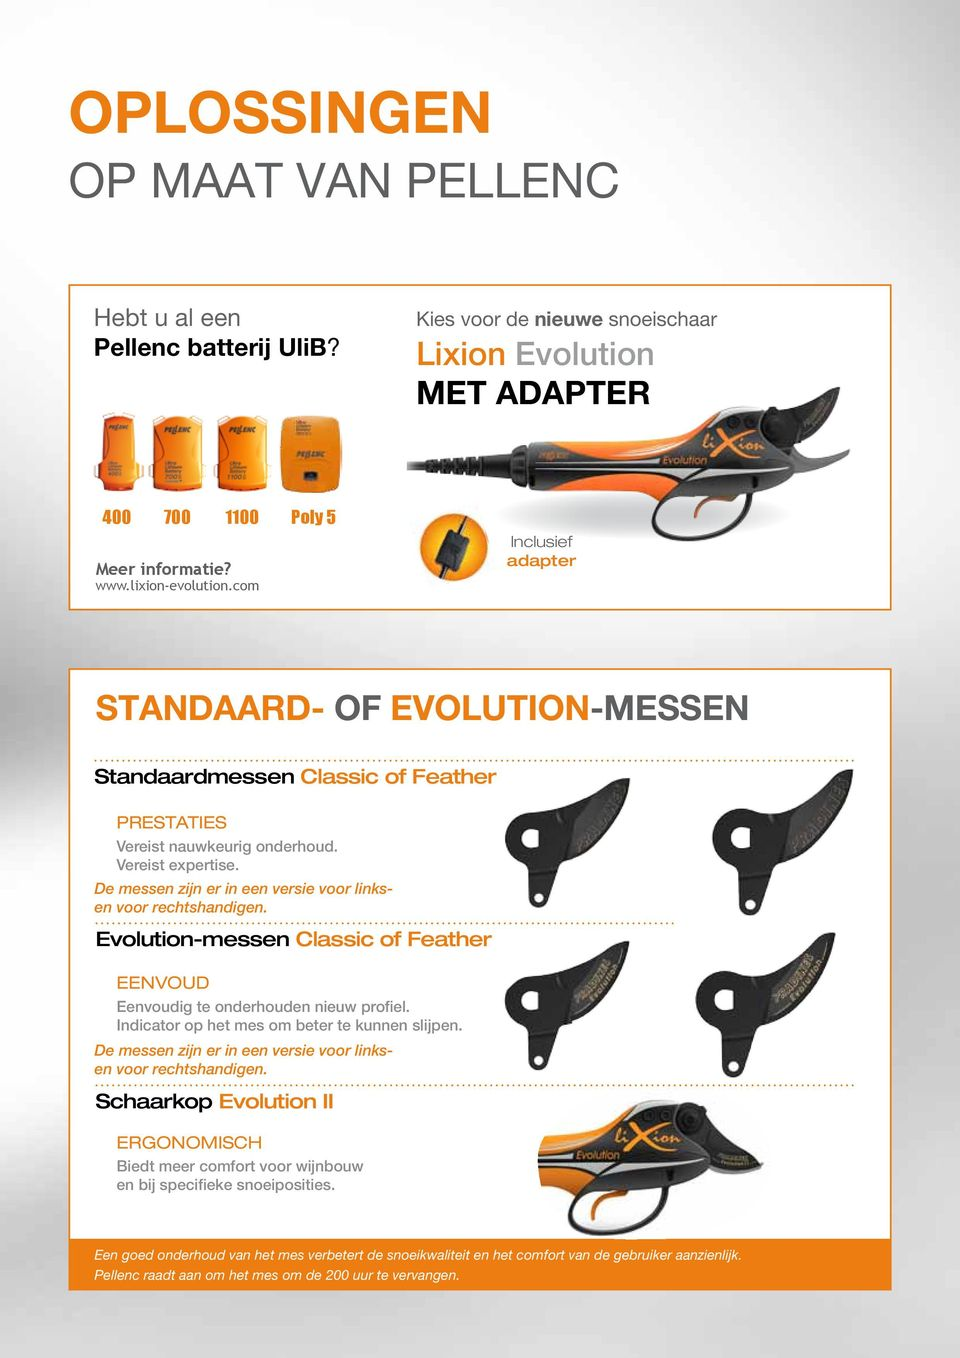 De messen zijn er in een versie voor linksen voor rechtshandigen. Evolution-messen Classic of Feather EENVOUD Eenvoudig te onderhouden nieuw profiel. Indicator op het mes om beter te kunnen slijpen.